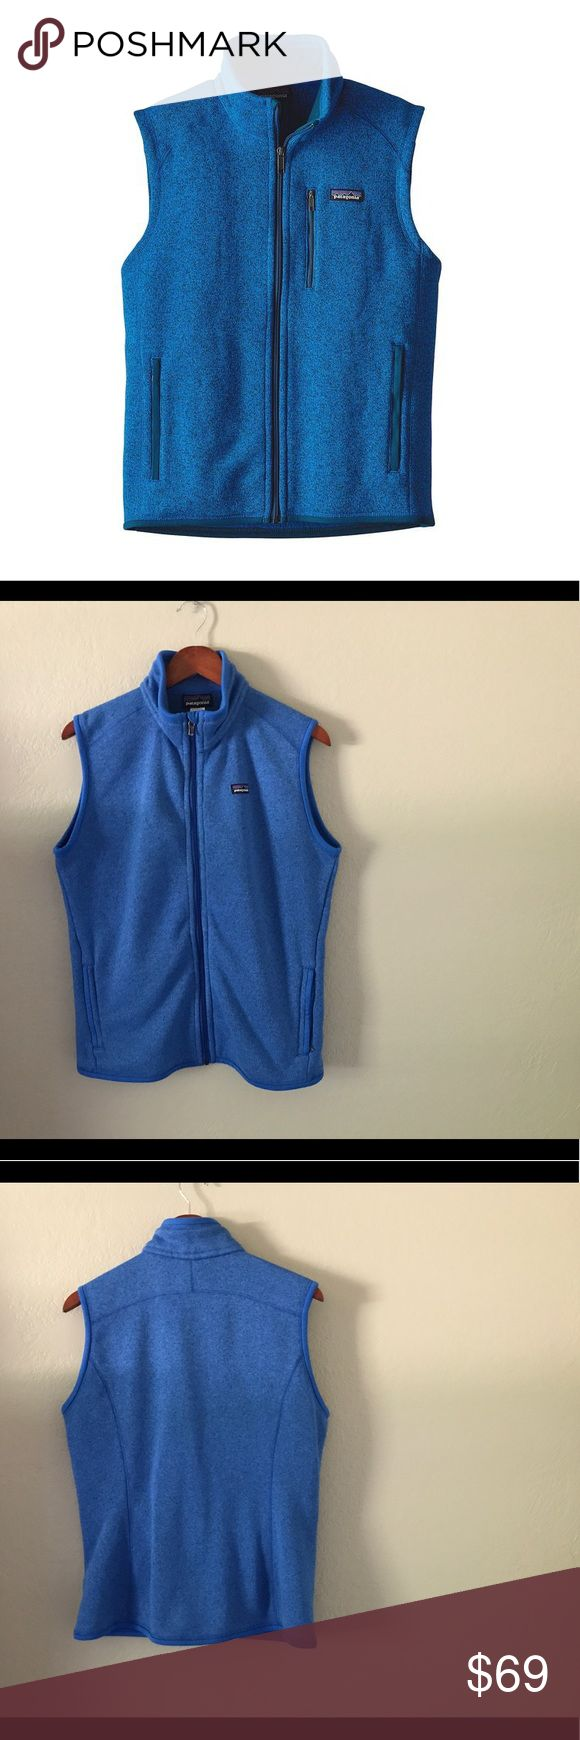 Patagonia Better Sweater Vest - Women's • XL Patagonia Better Sweater Vest - Women's • XL - Signature Andes Blue in color - barely worn - excellent condition - staple piece - keeps you warm without feeling heavy - feels wonderful and rich! Patagonia Jackets & Coats Vests